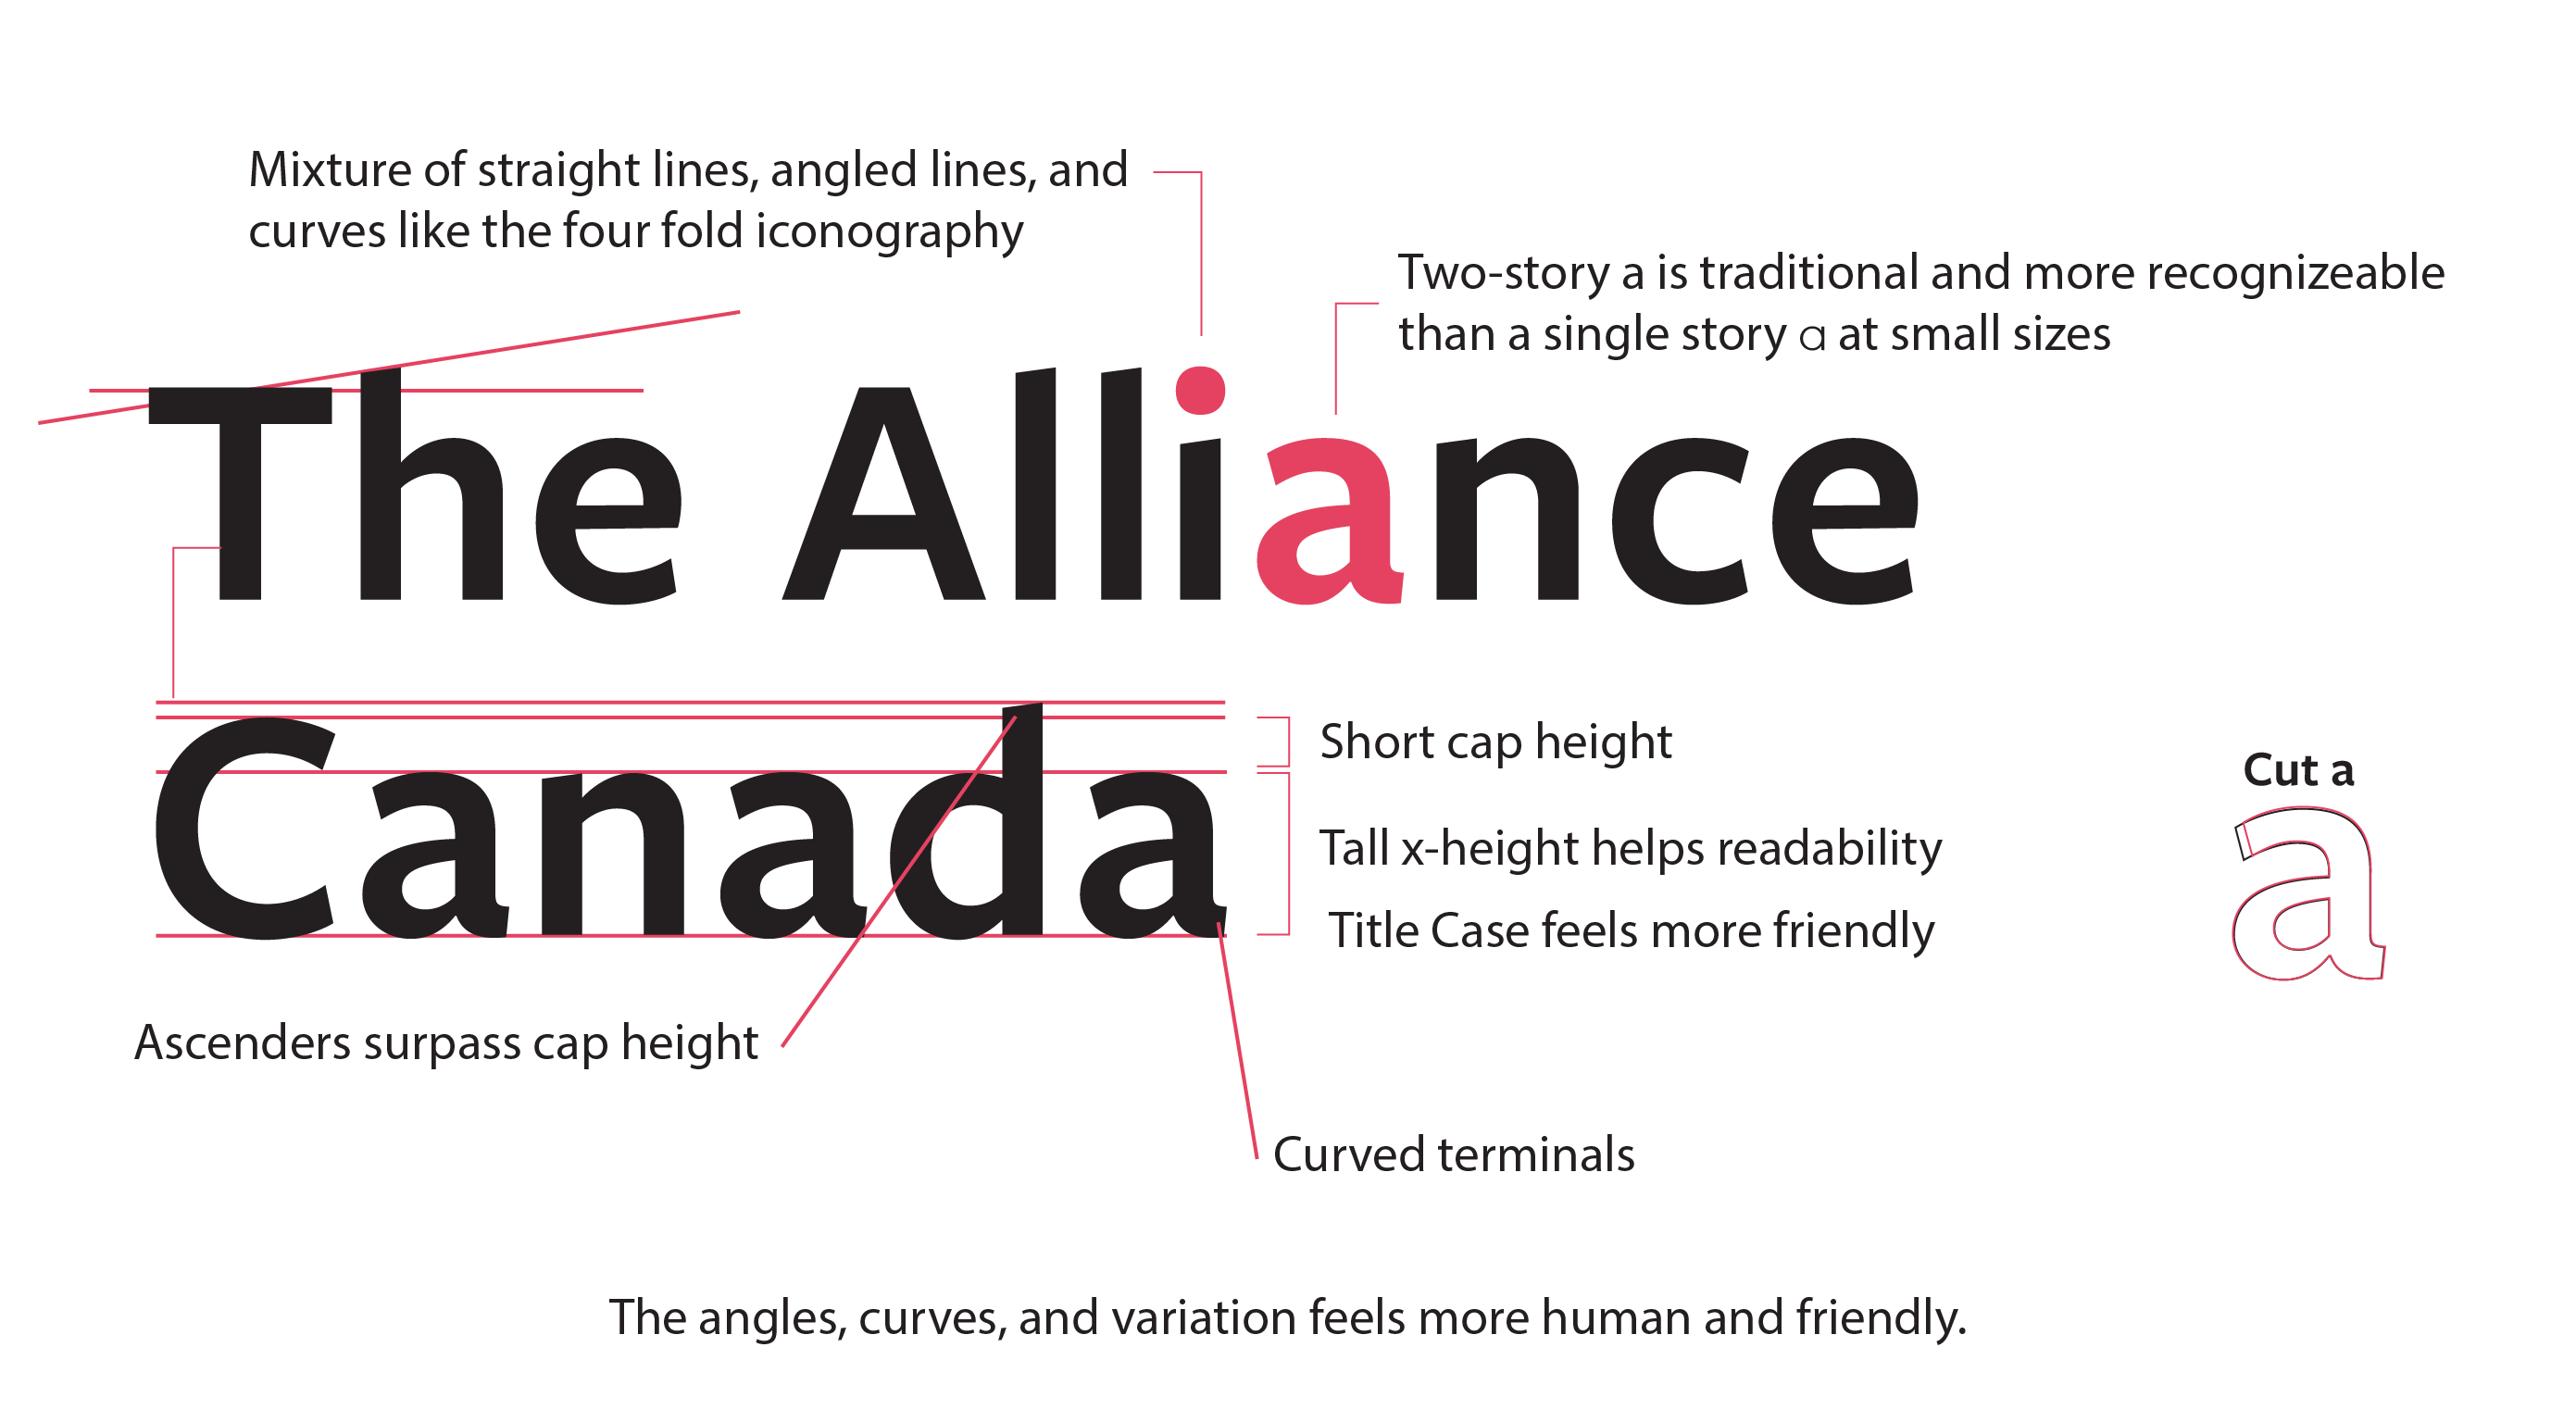 Alliance Canada typography process. Text reads: Mixture of straight lines, angled lines, and curves like the four fold iconography. Two-story a is traditional and more recognizeable than a single story a at small sizes. Ascenders surpass cap height. Short cap height. Tall x-height helps readability. Title Case feels more friendly. Curved terminals. The angles, curves, and variation feels more human and friendly.